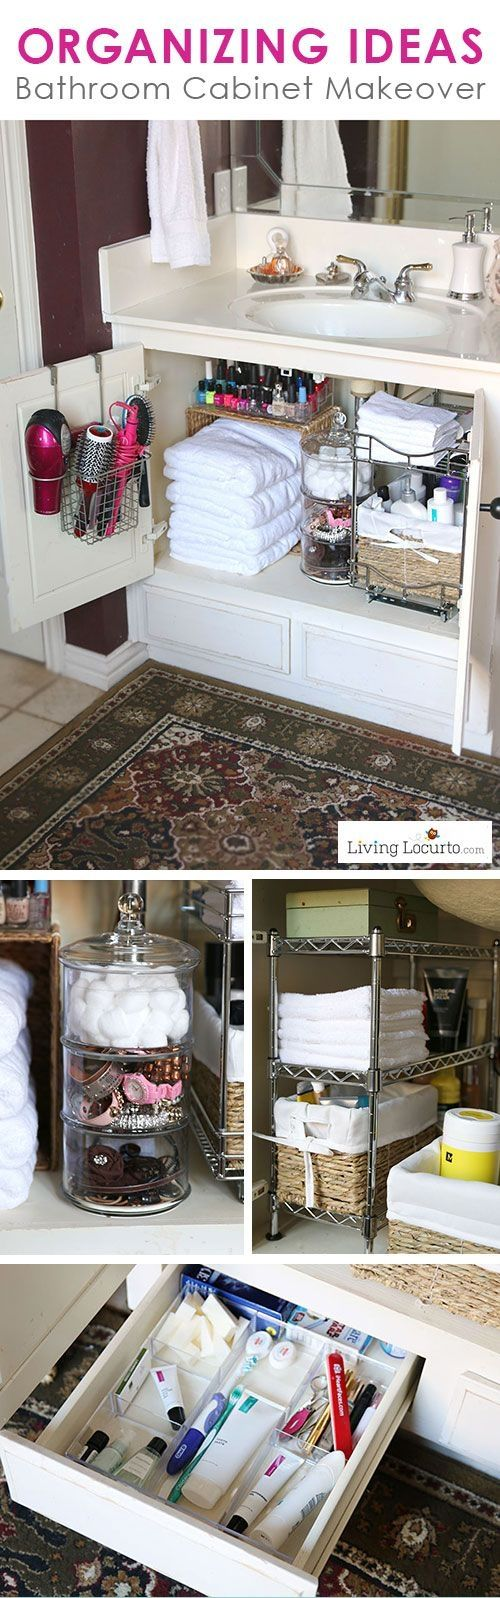 Small bathroom ideas pinterest - Quick Organizing Ideas For Your Bathroom